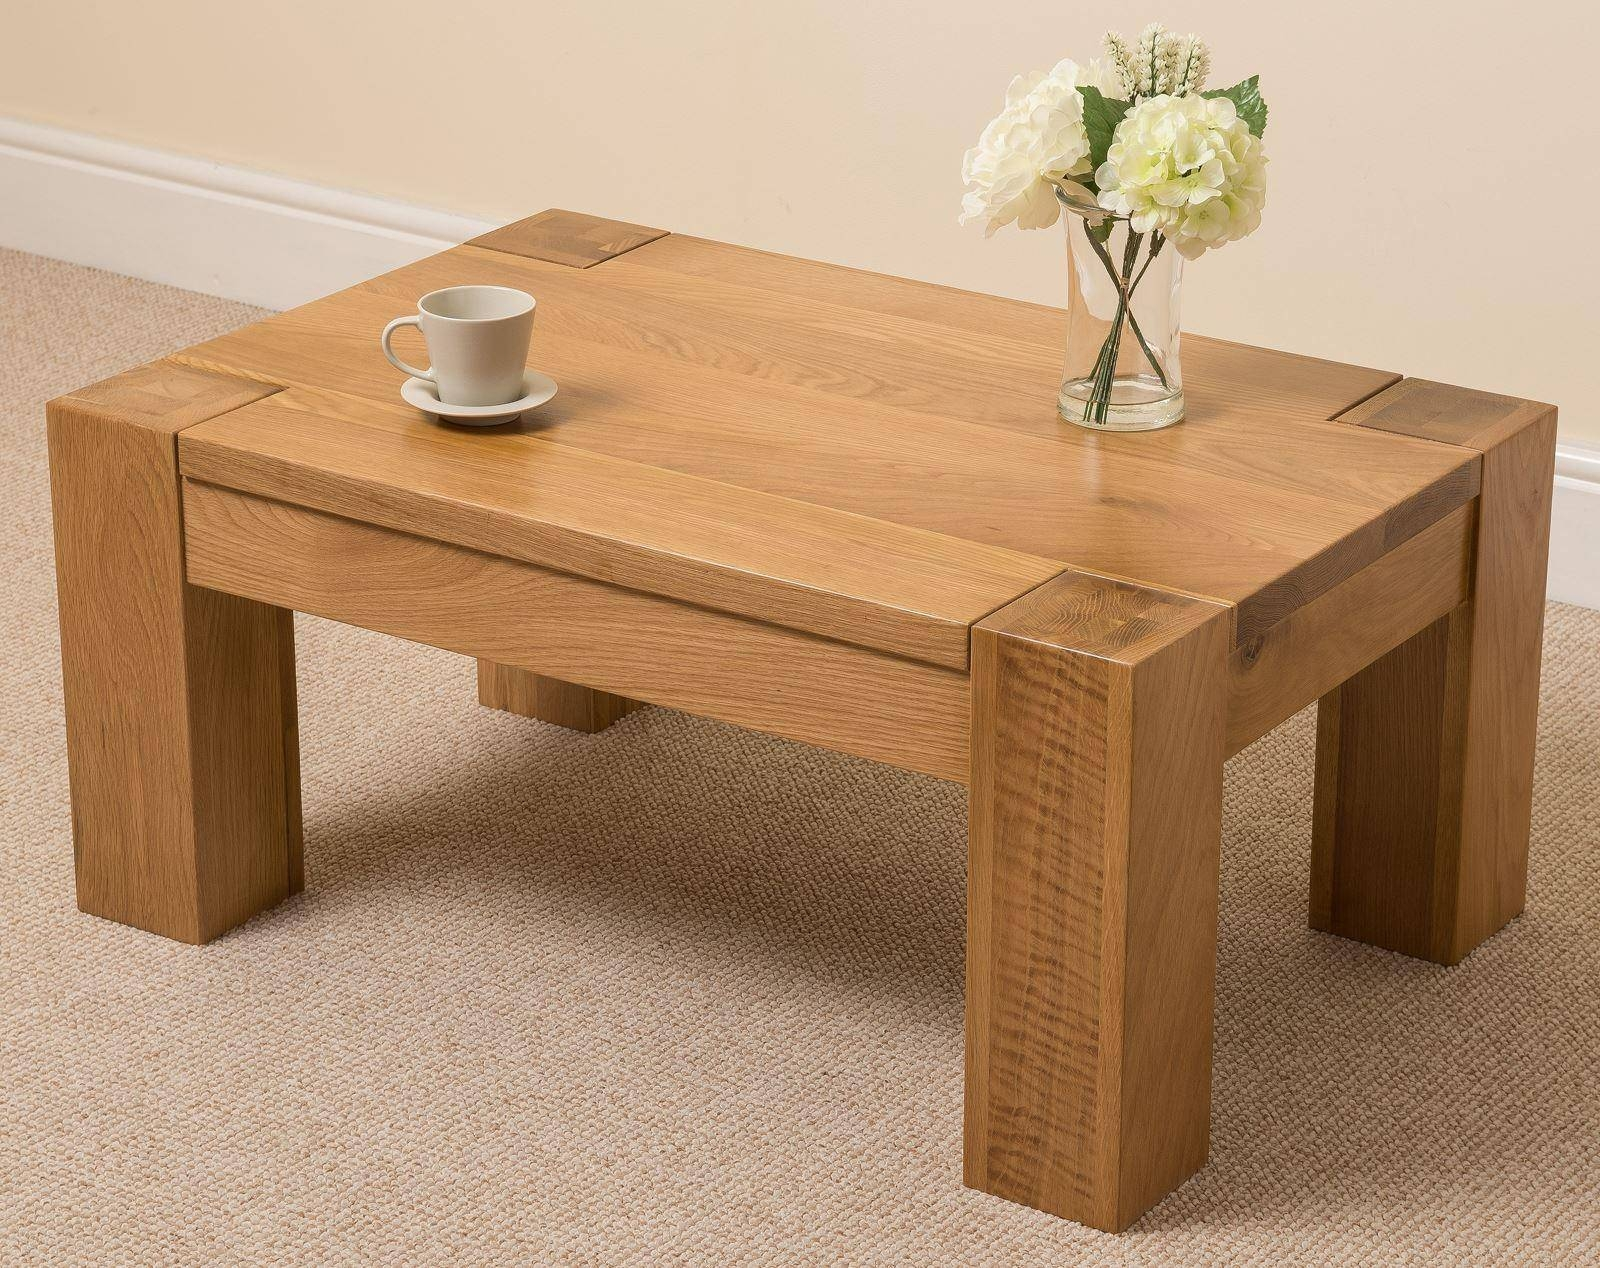 Kuba Solid Oak Coffee Table | Oak Furniture King throughout Light Oak Coffee Tables (Image 7 of 15)